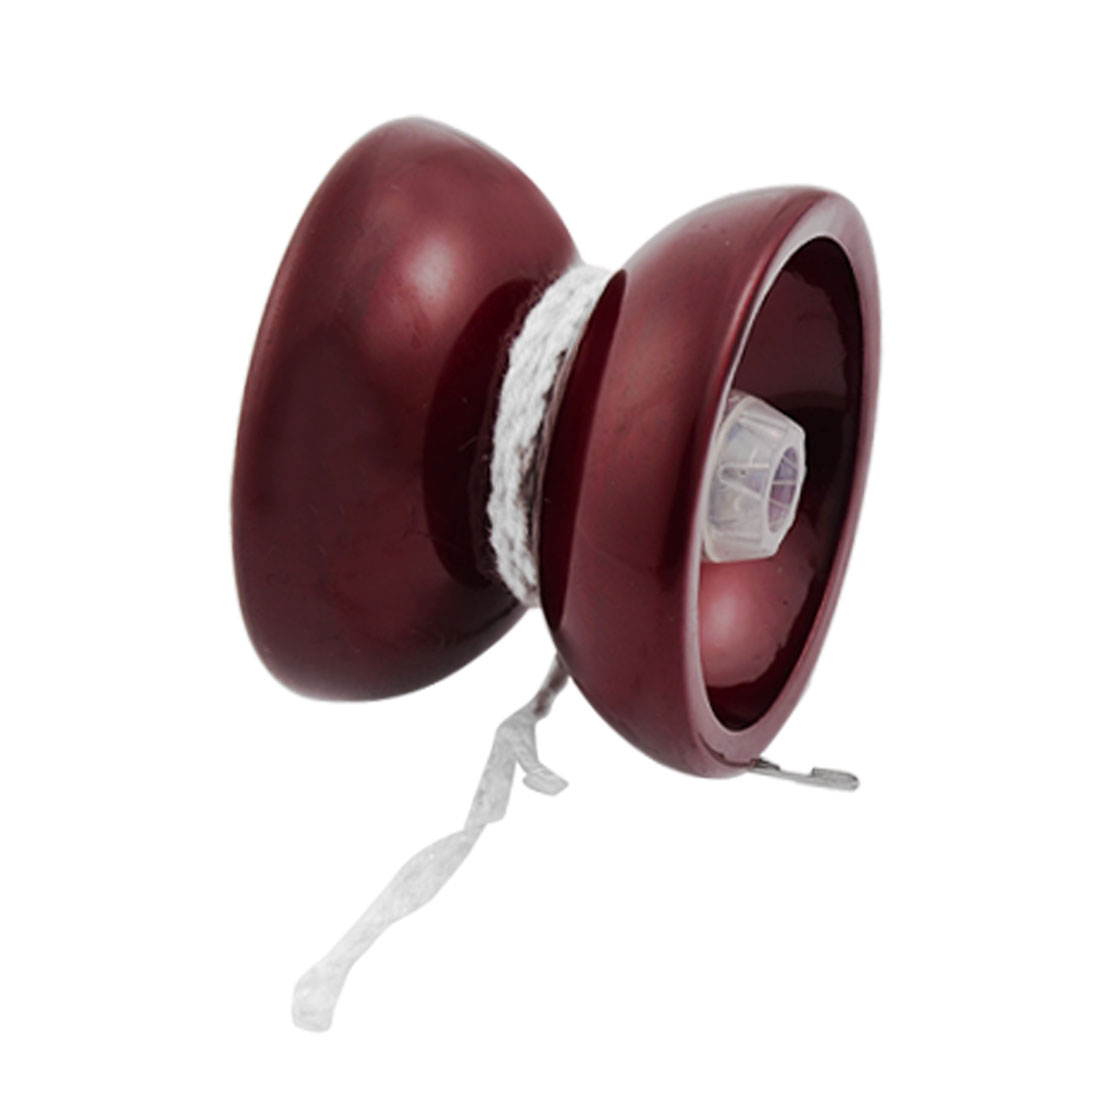 Burgundy Alloy Ball Bearing Yo Yo Ball Toy for Children